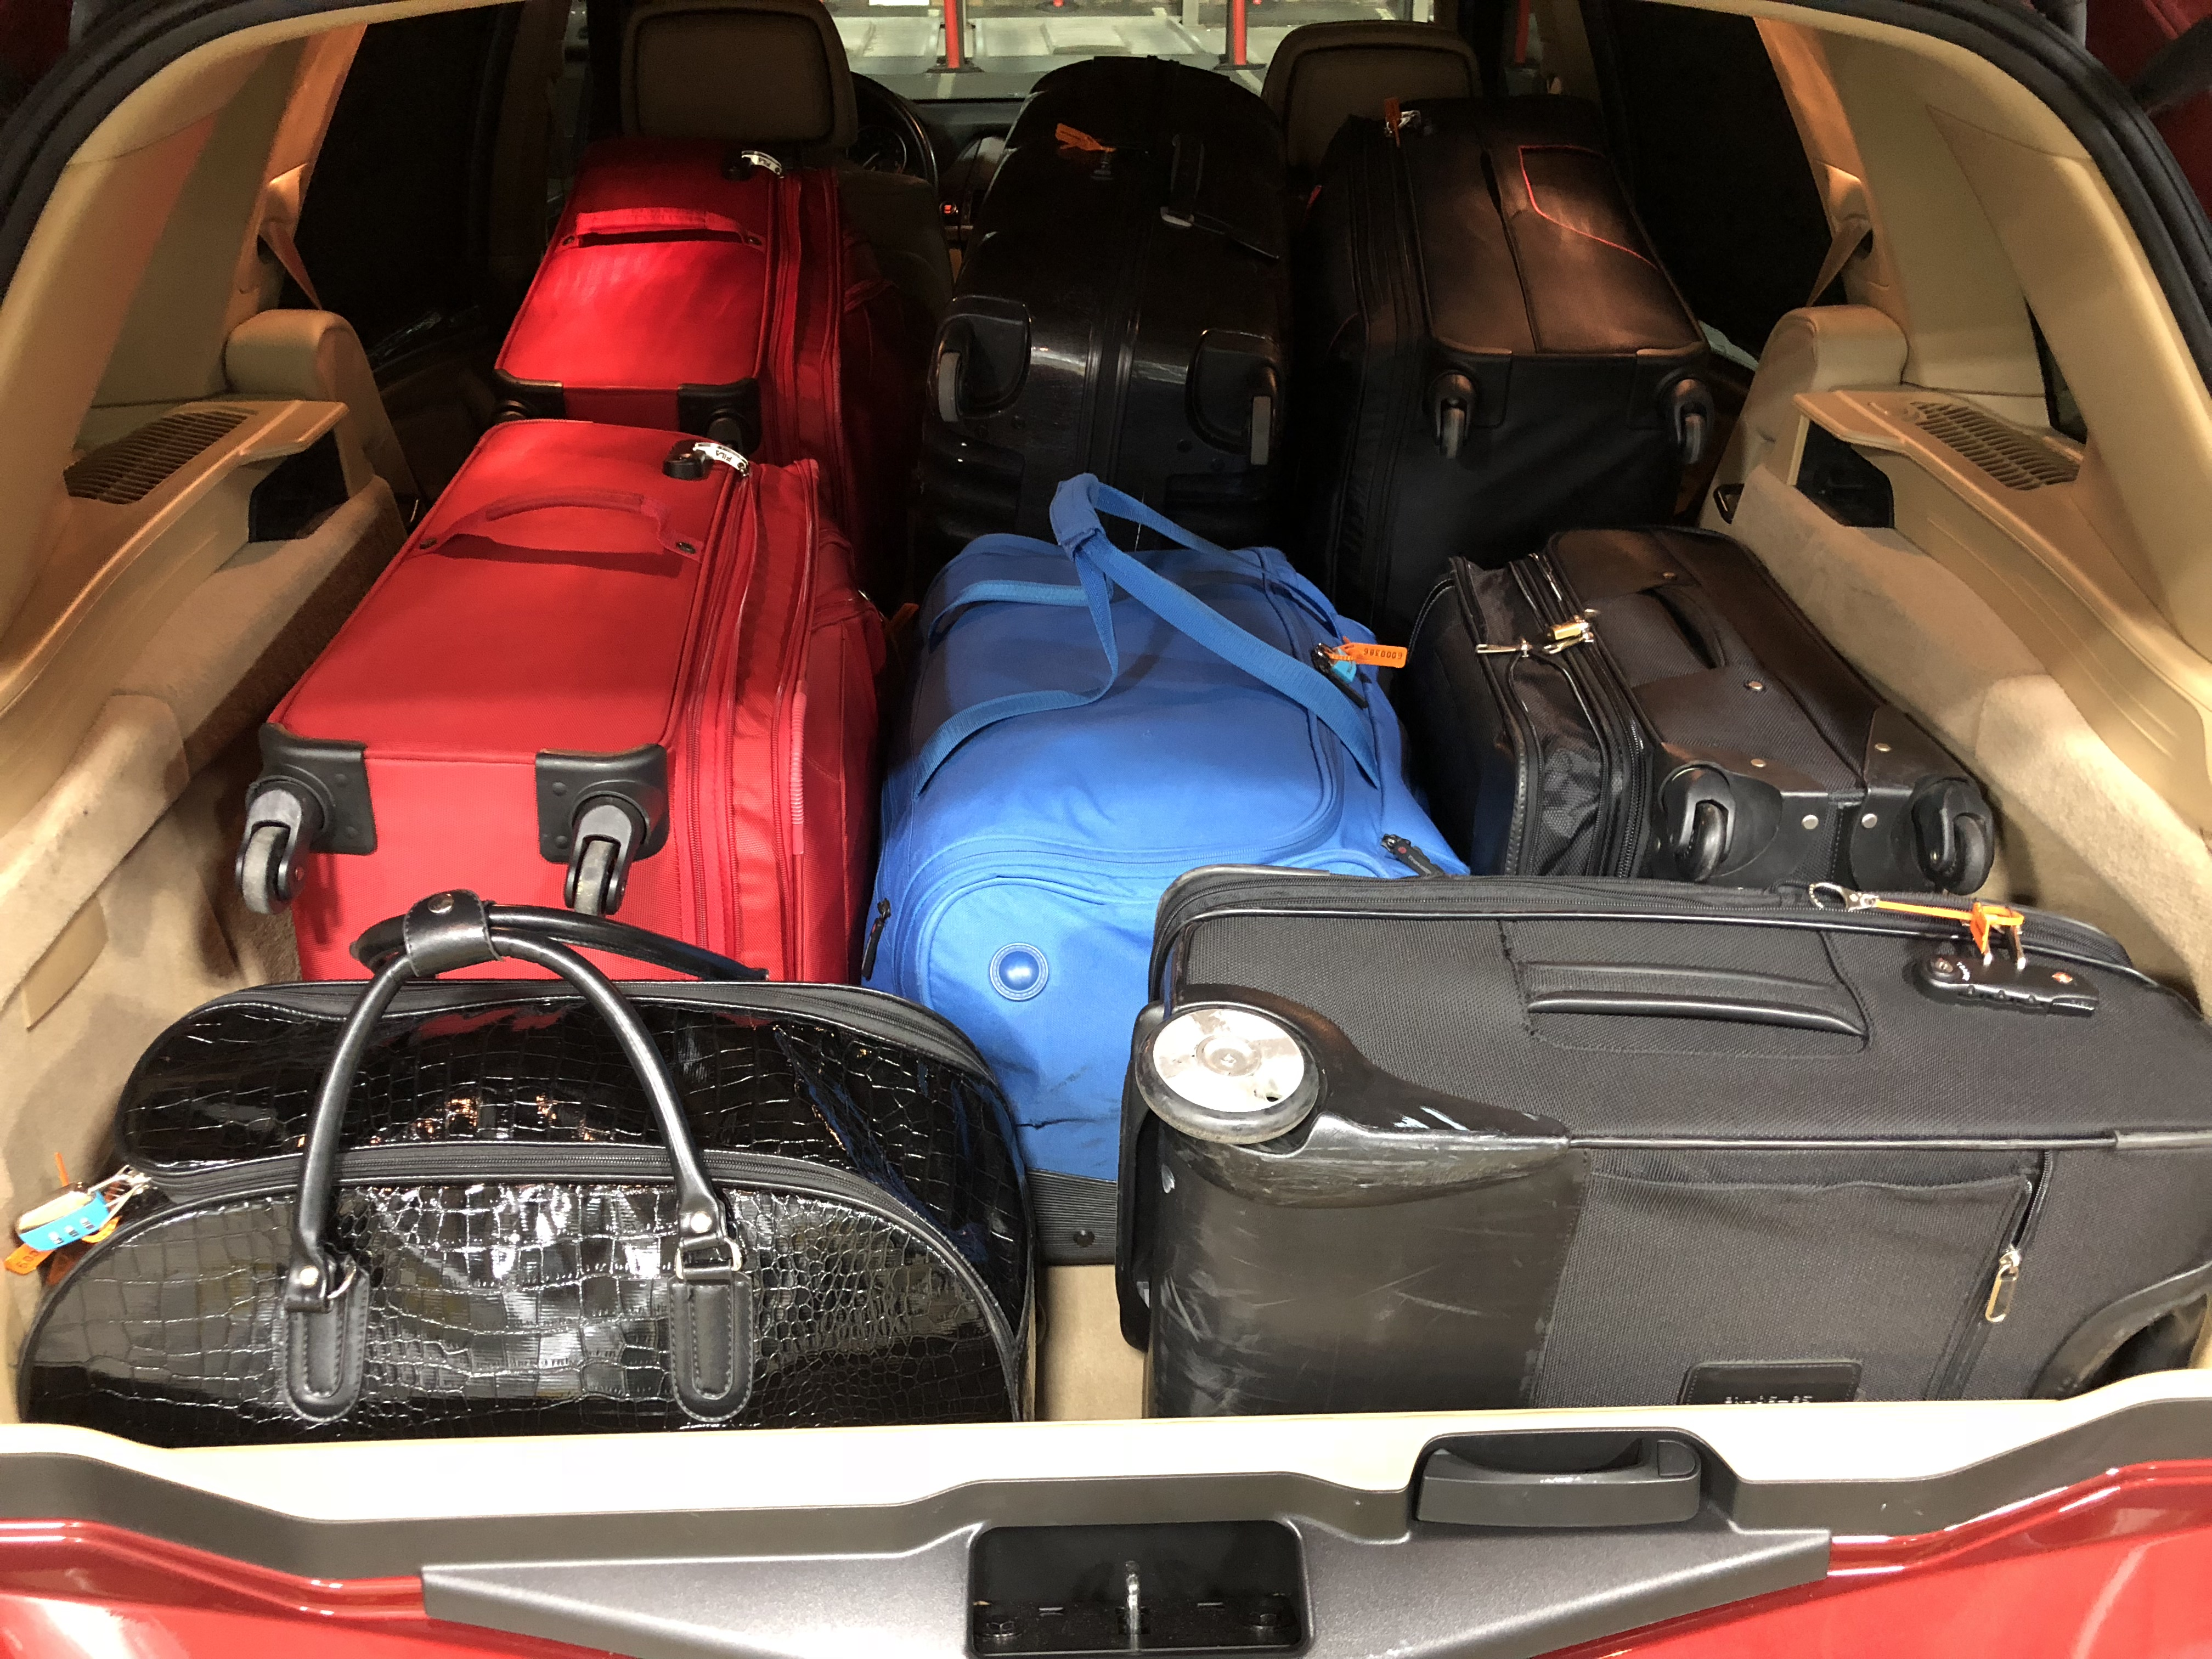 29 May Luggage Storage Options In NYC